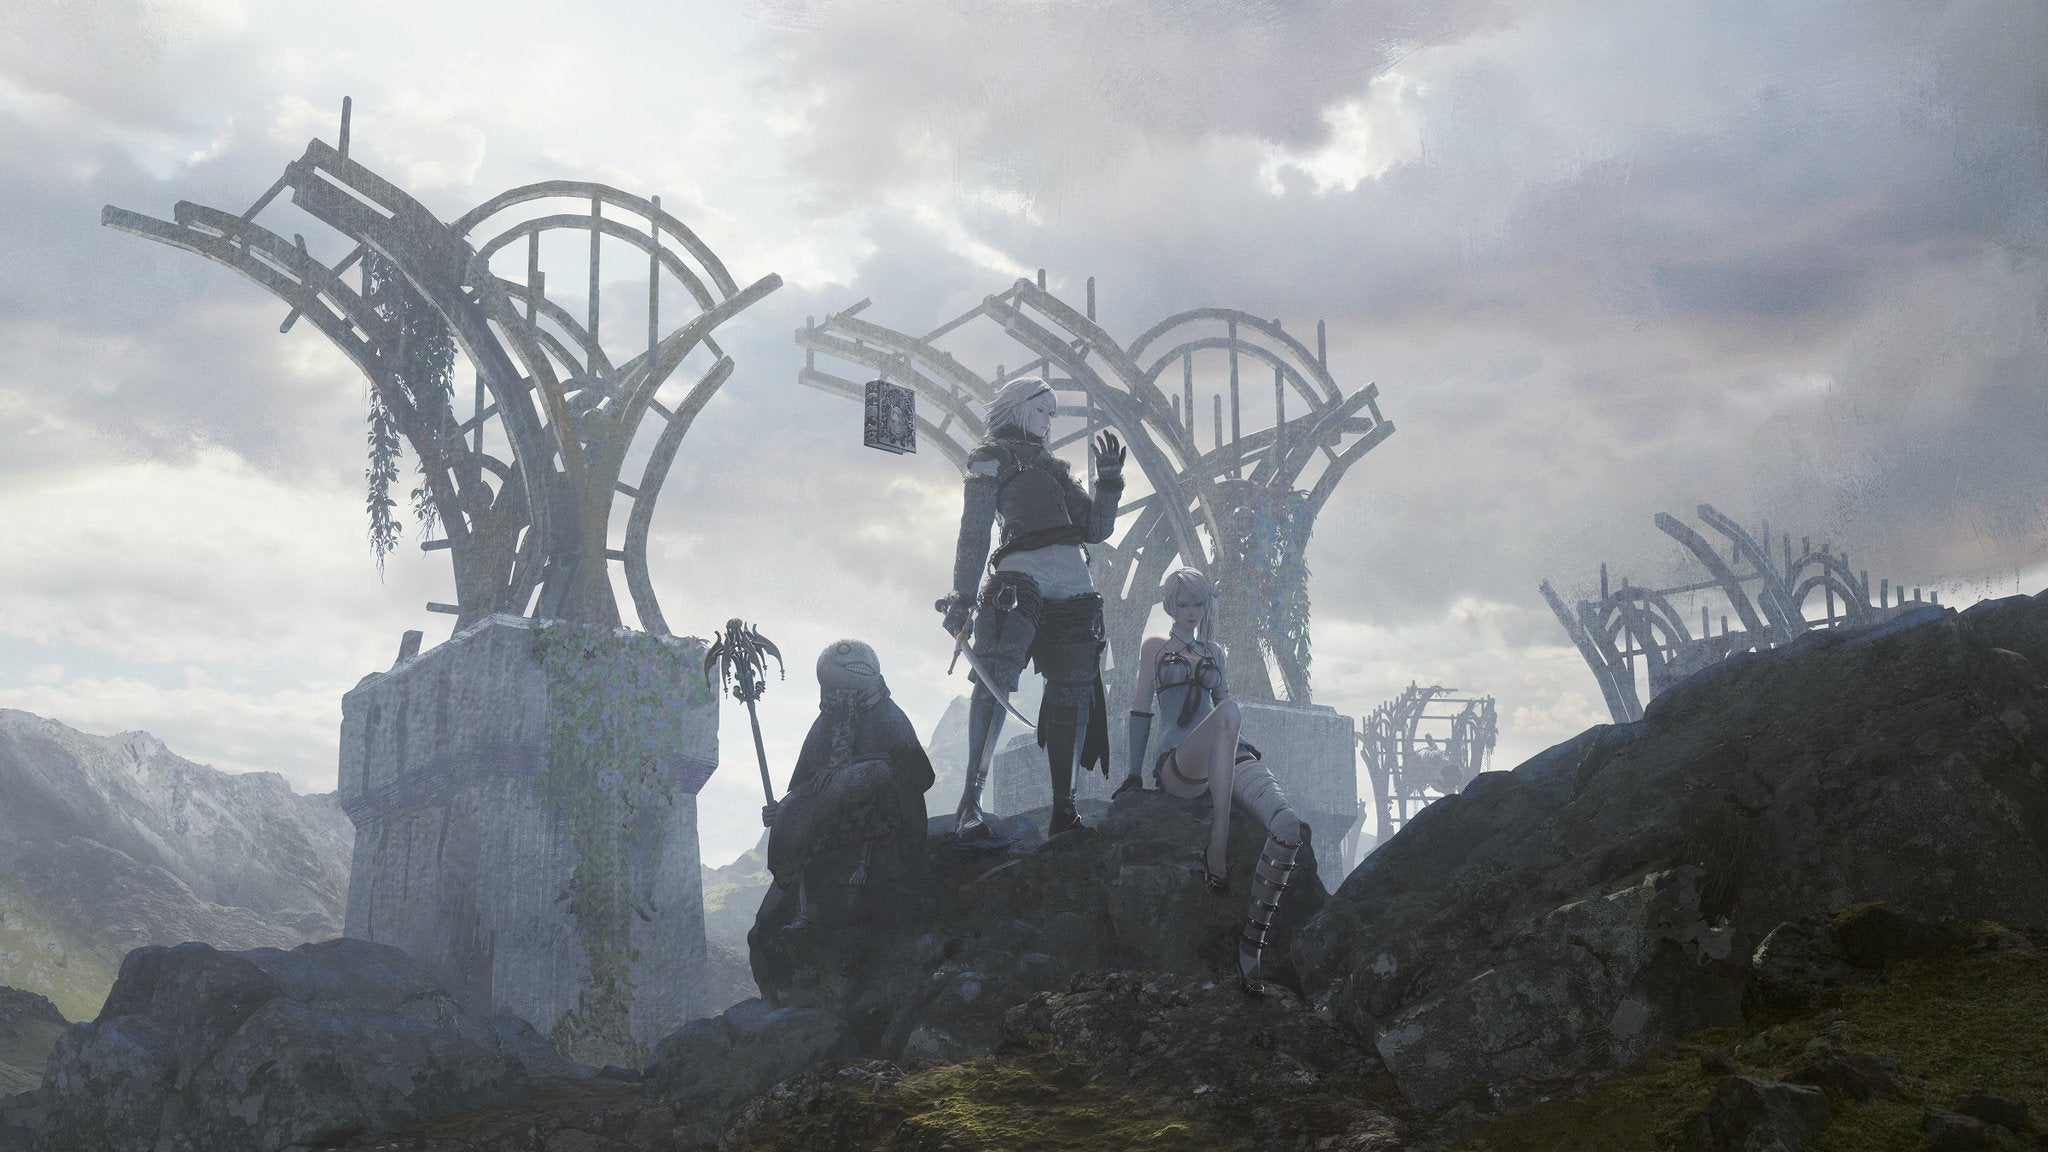 NieR Replicant remake is coming to PS4, Xbox One and PC in 2021 | Trusted Reviews